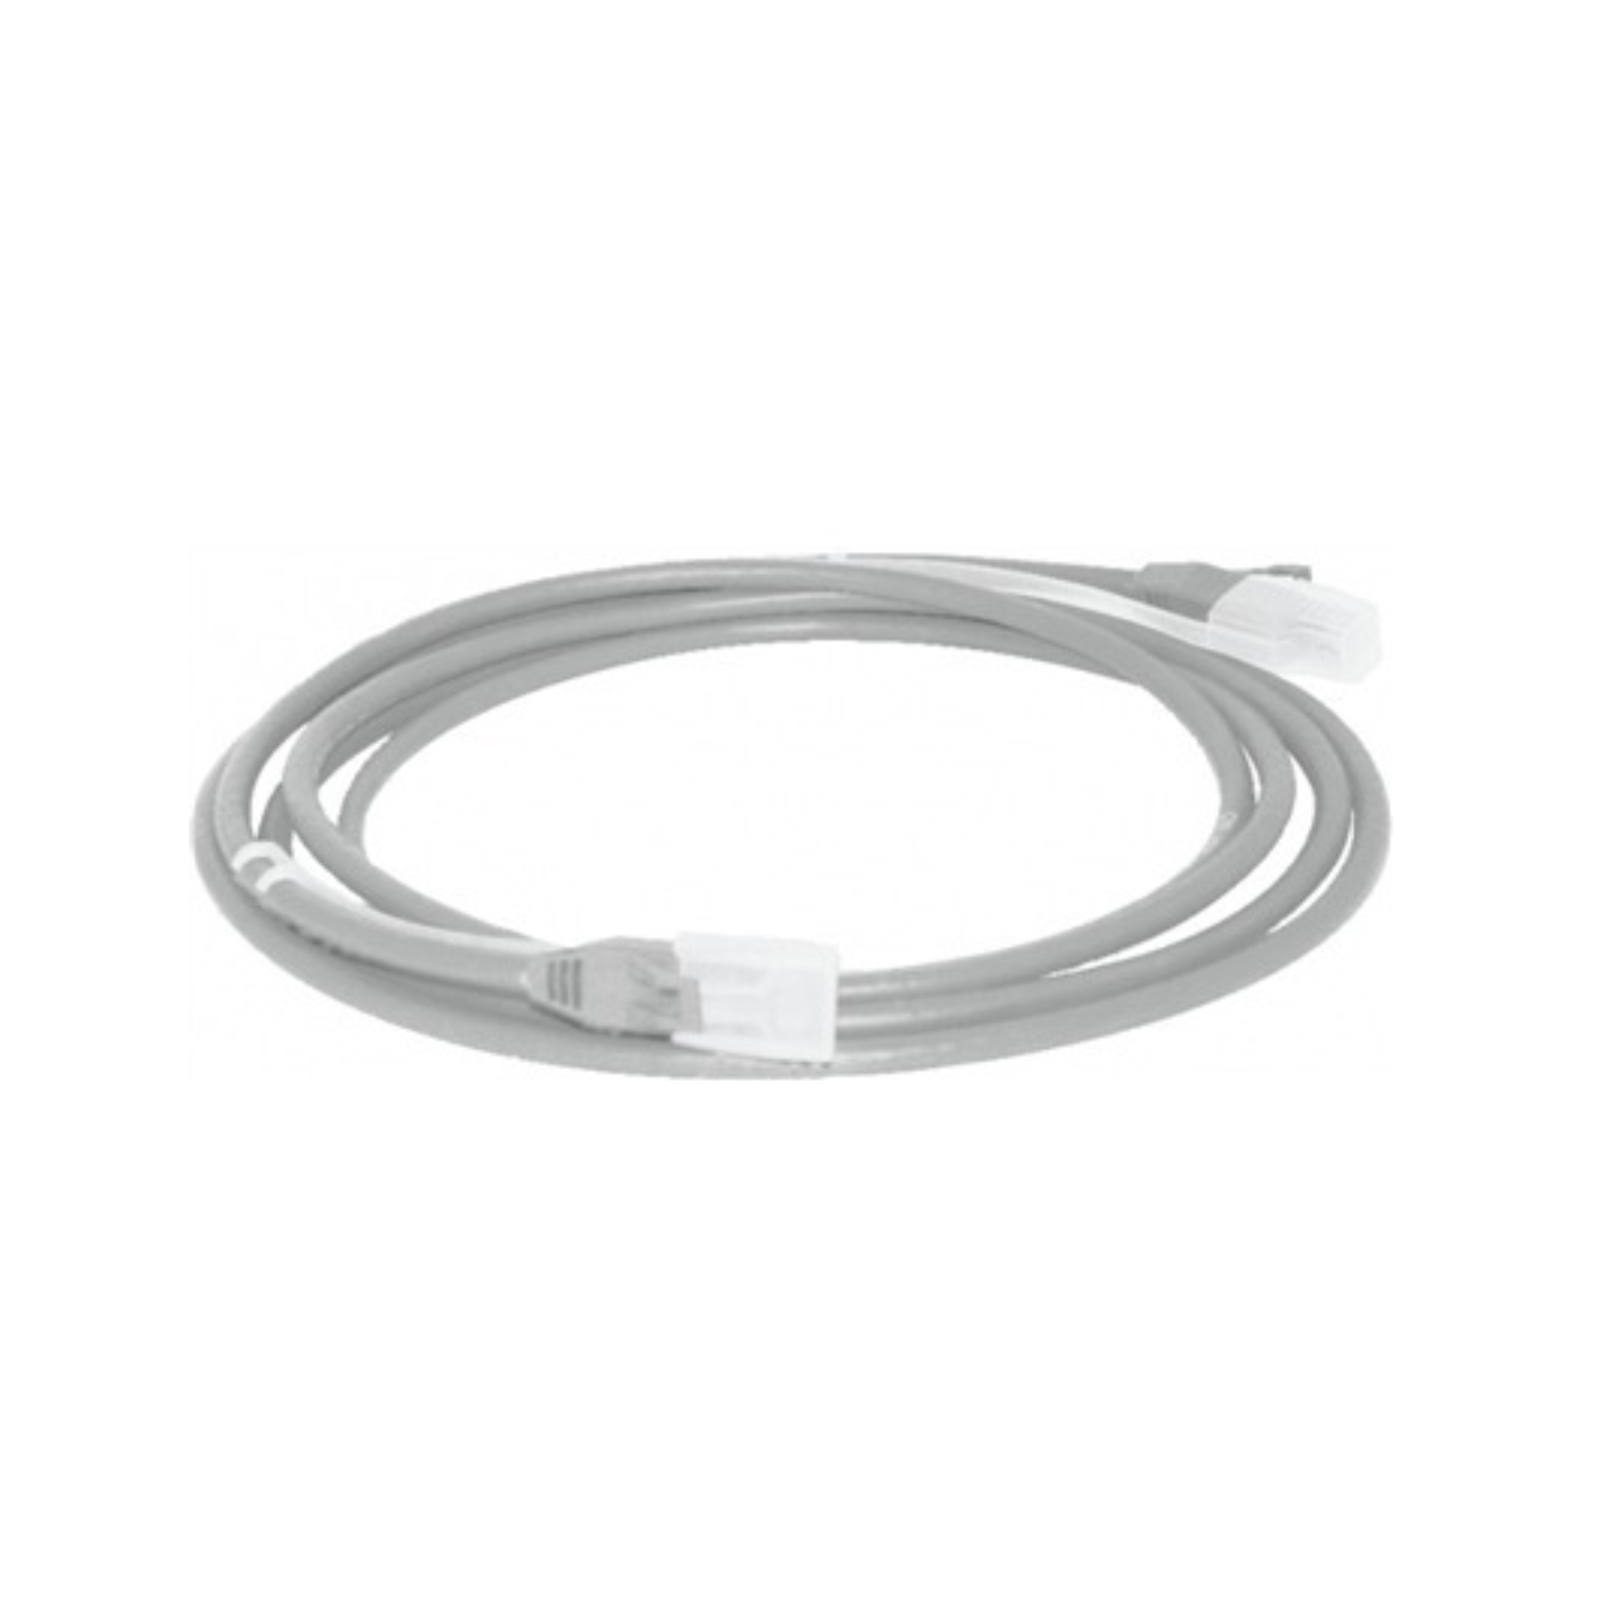 PATCH CORD CAT 5E CINZA